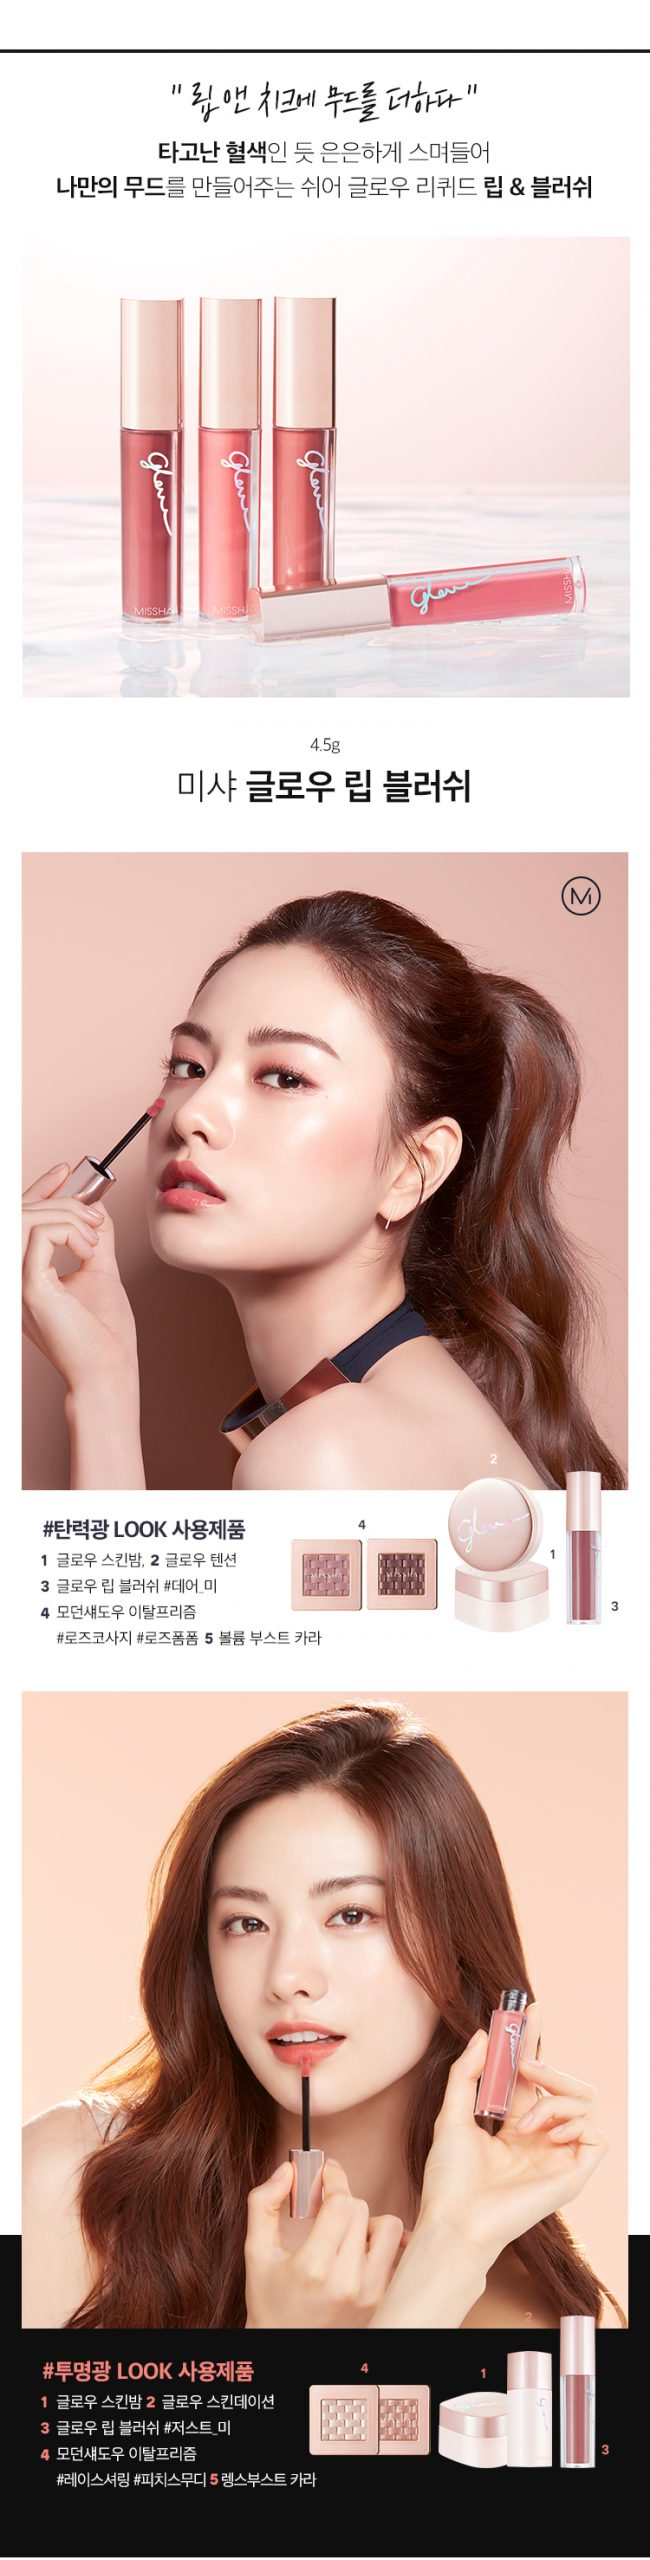 Son-Kem-MISSHA-Glow-Lip-Blush-1-scaled.jpg